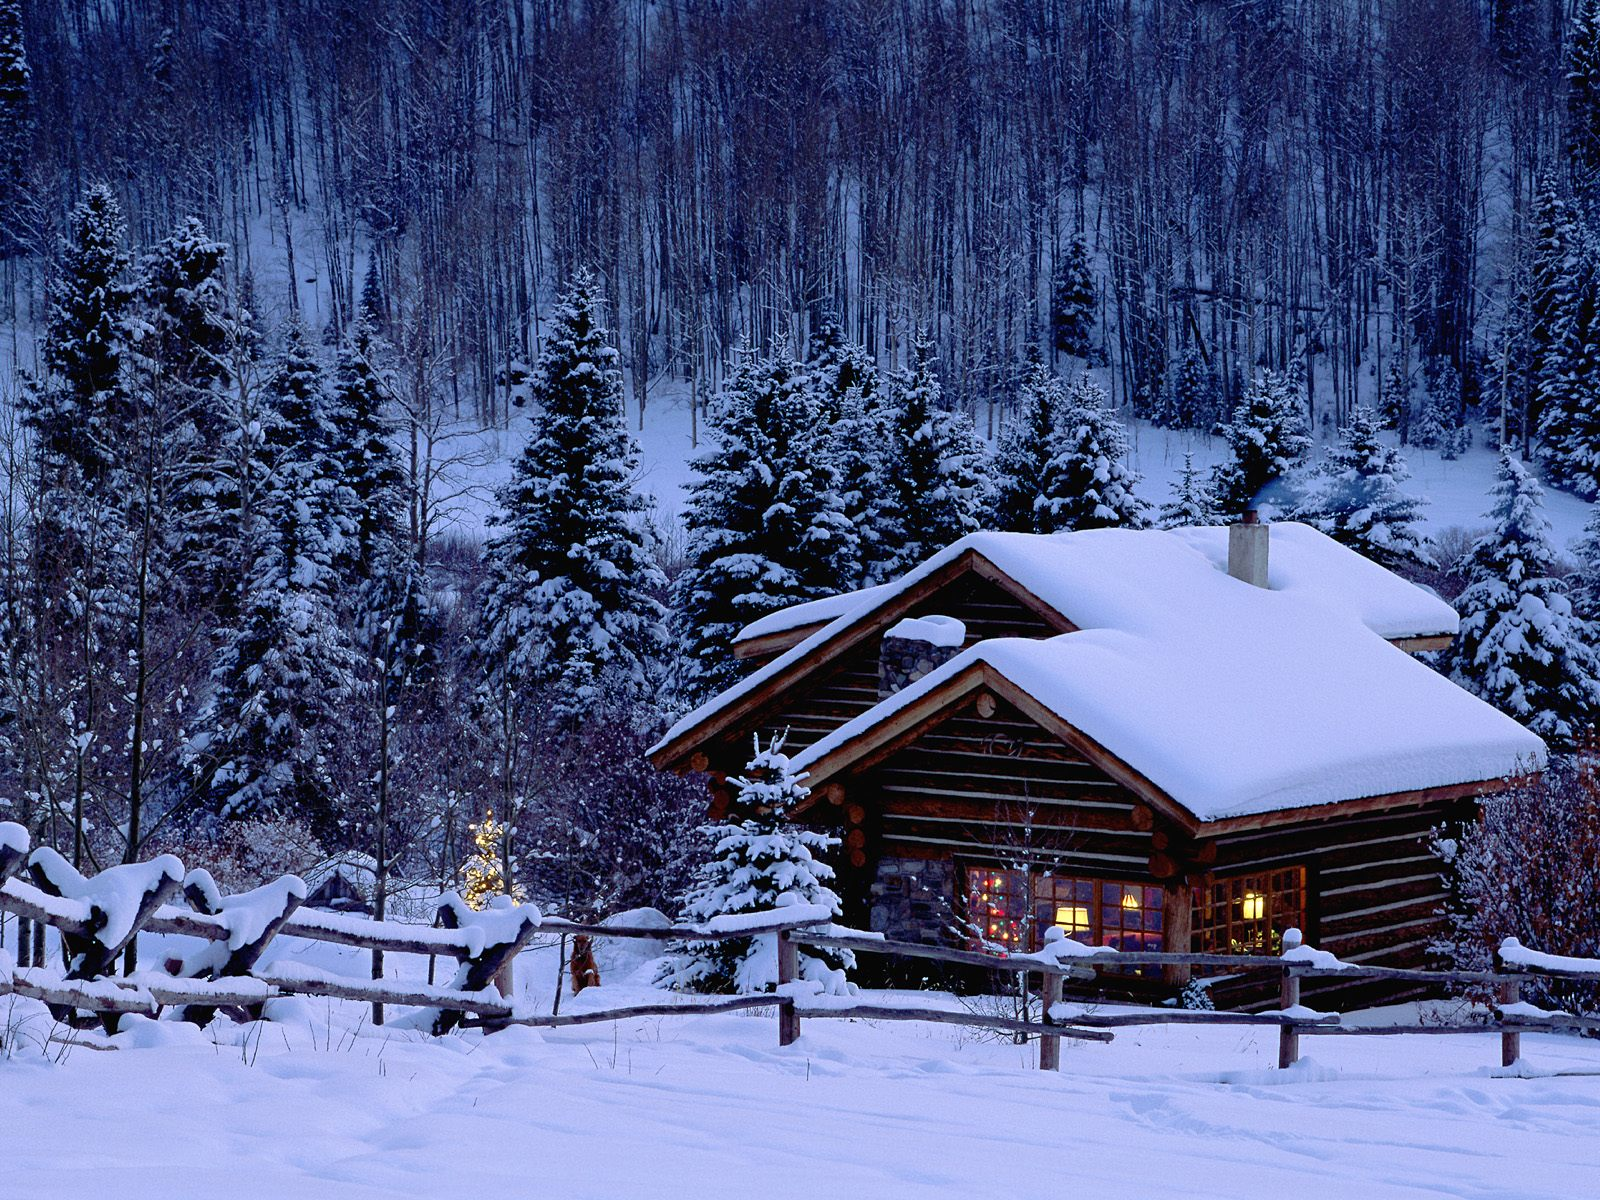 country winter desktop backgrounds wallpapers - photo #34